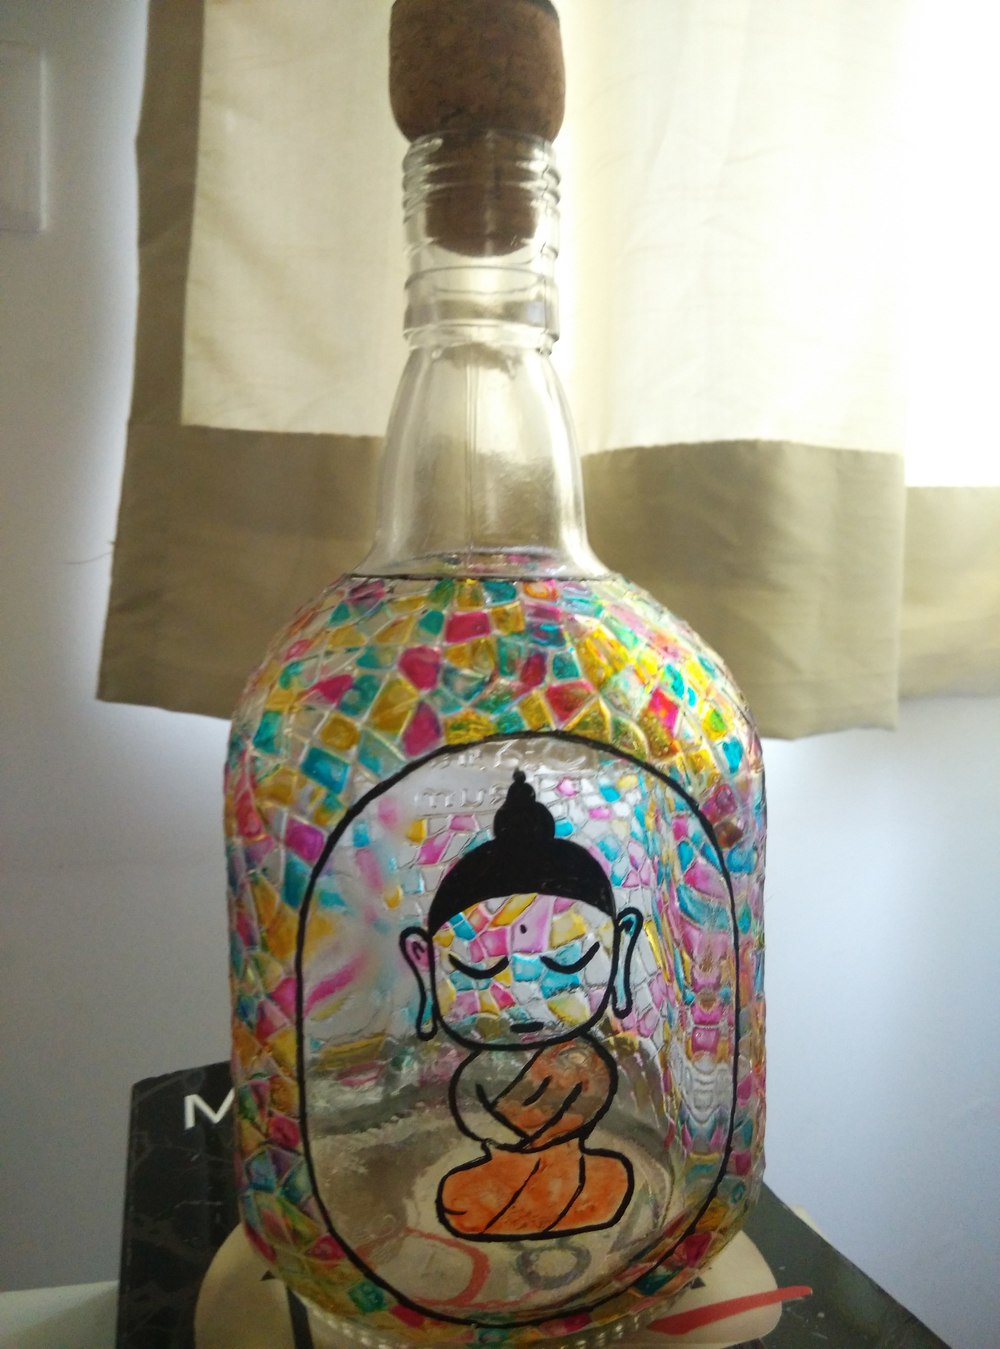 Little Buddha on an Old Monk bottle - Not my work